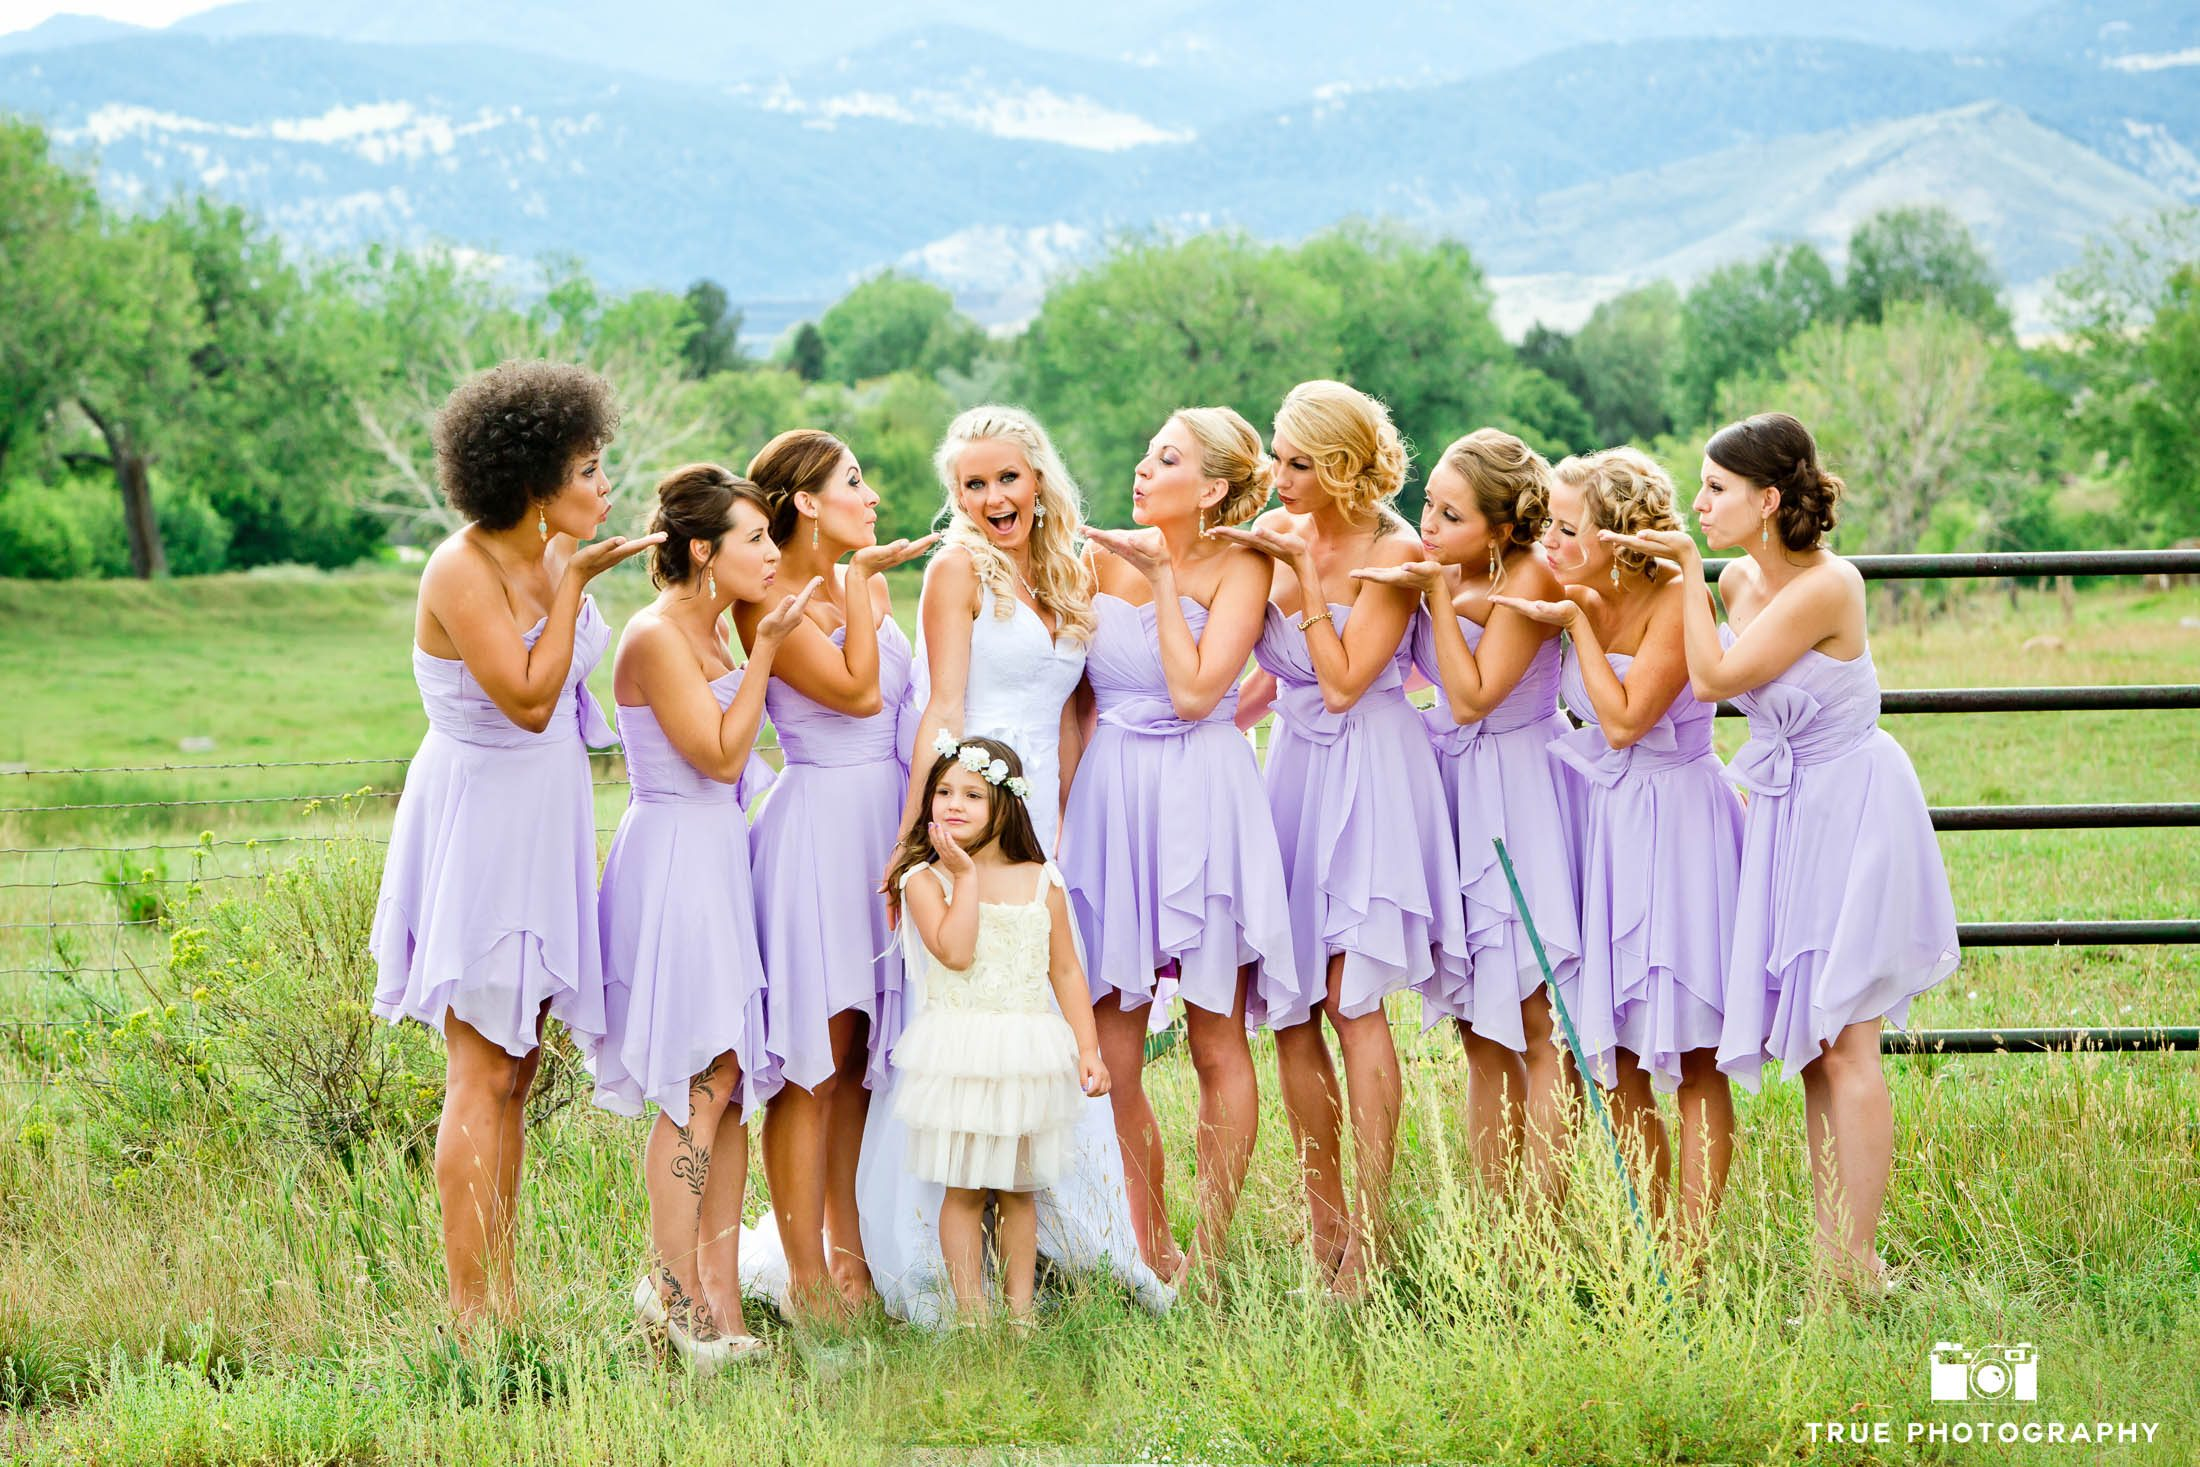 Bridesmaids blow kiss towards bride